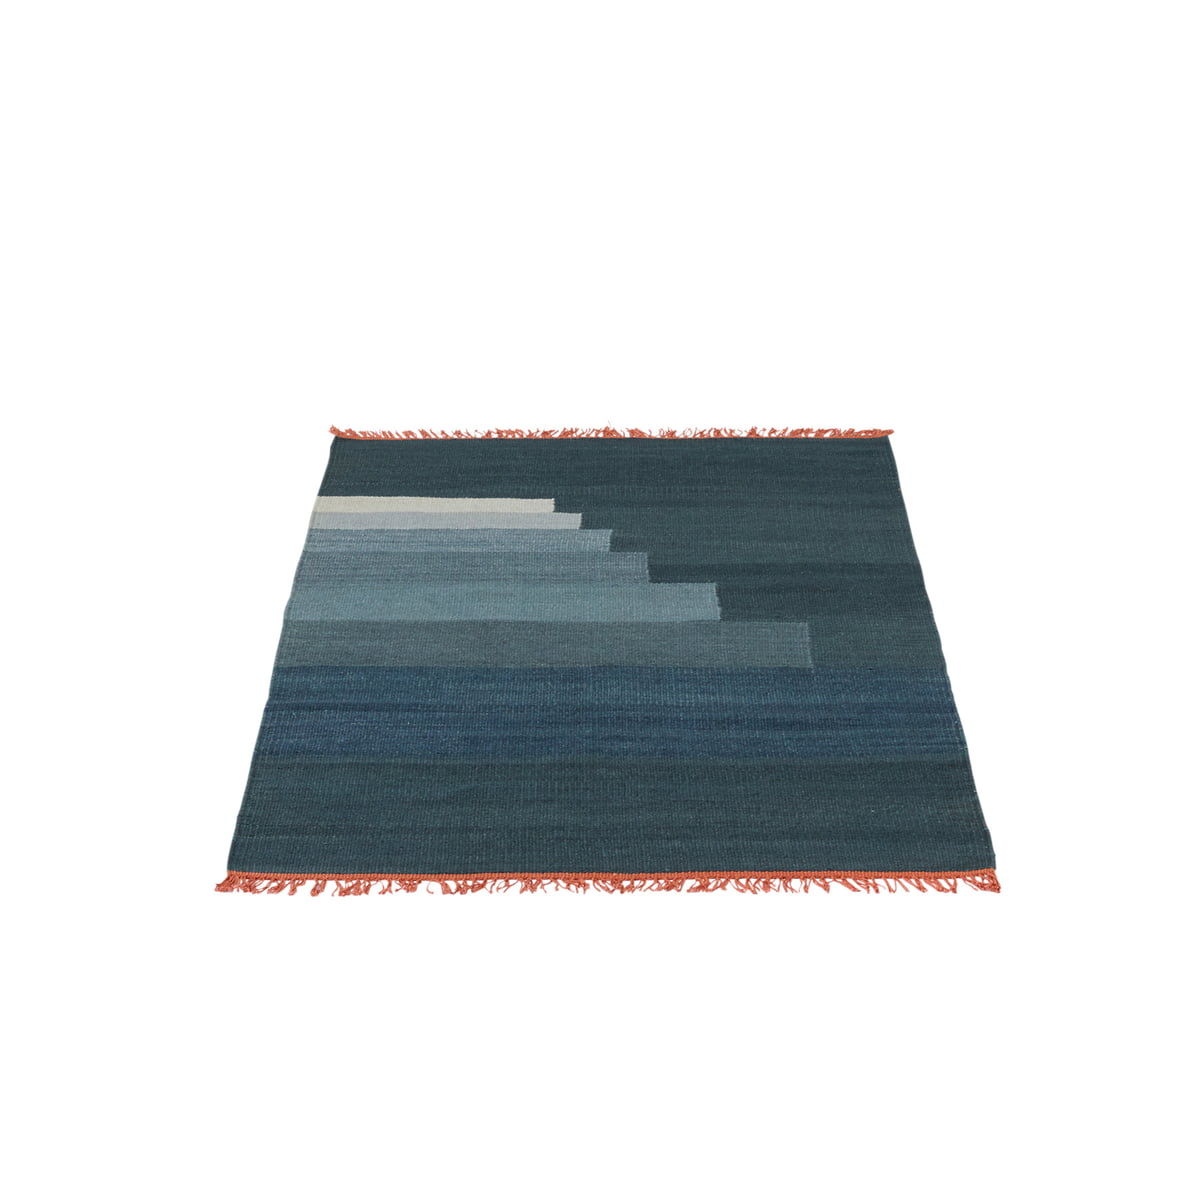 Andtradition another rug ap1 blue thunder freisteller 01